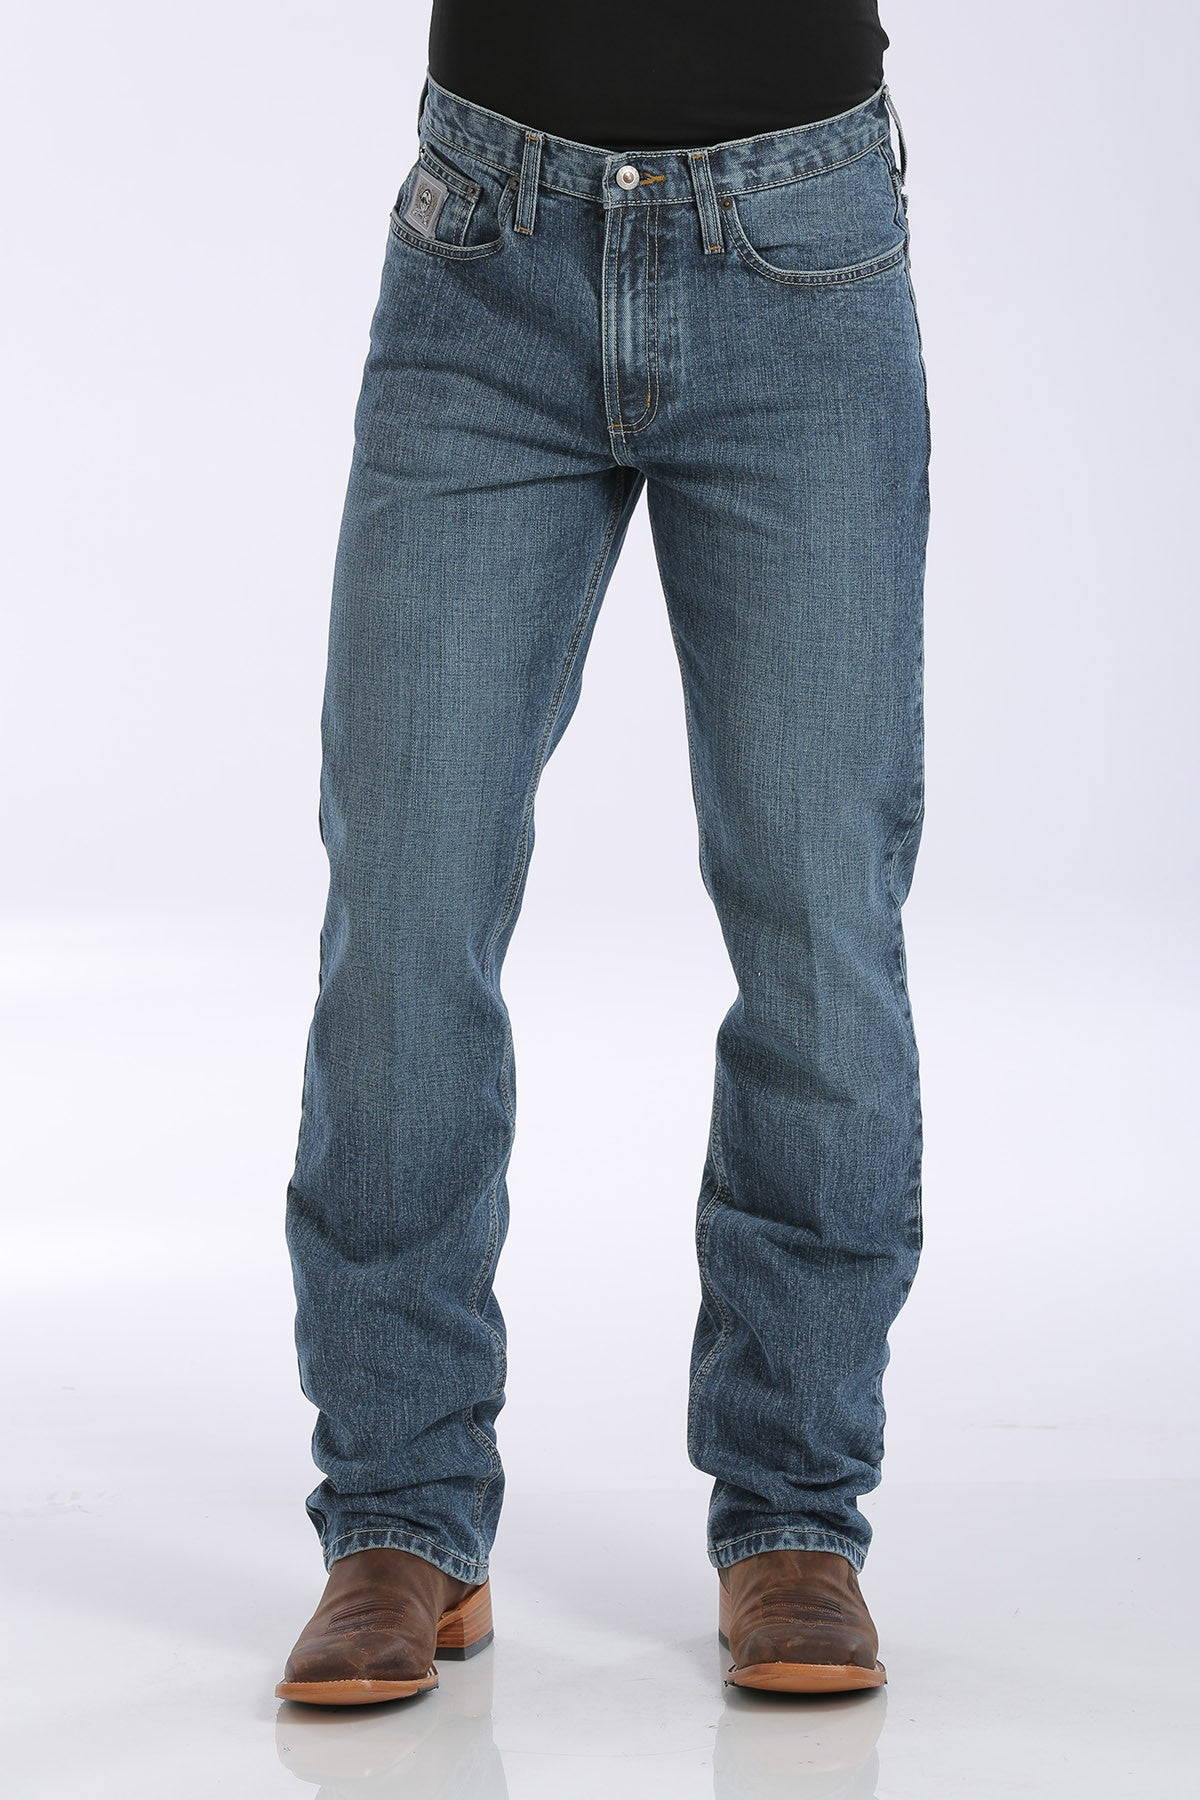 Men's Cinch Silver Label Jean #MB98034001